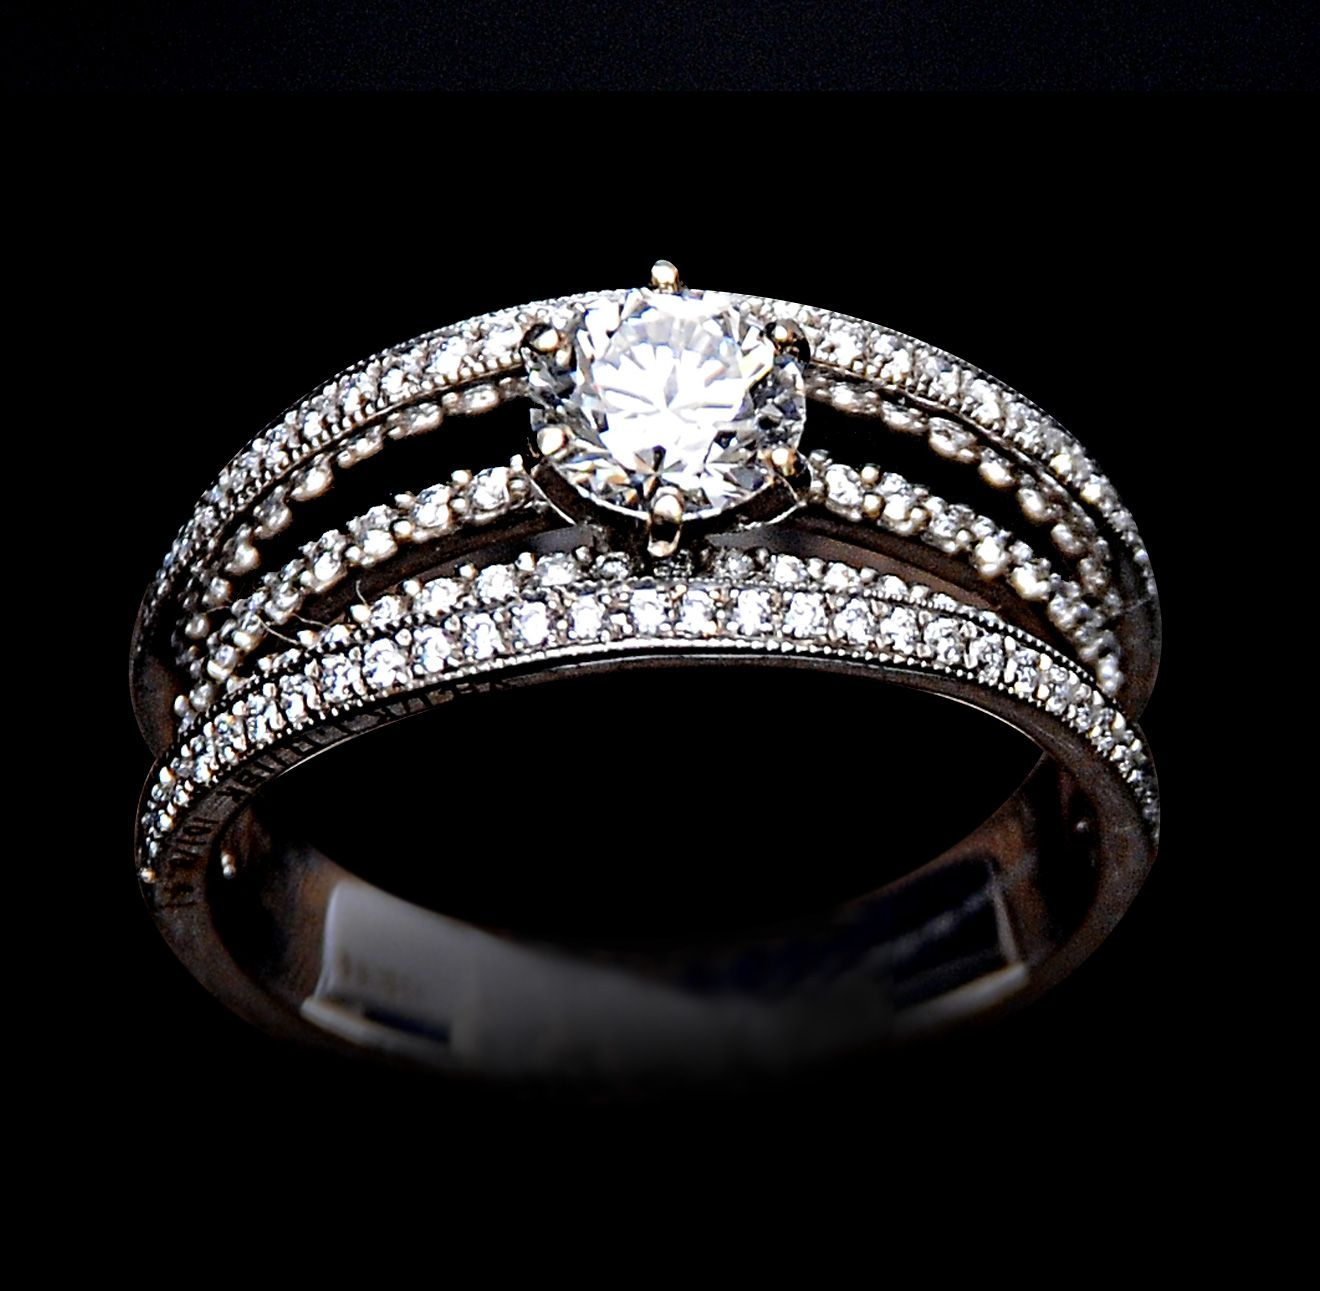 Awesome  wholesale diamond jewelry Buy high quality wholesale diamonds and fine jewelry online